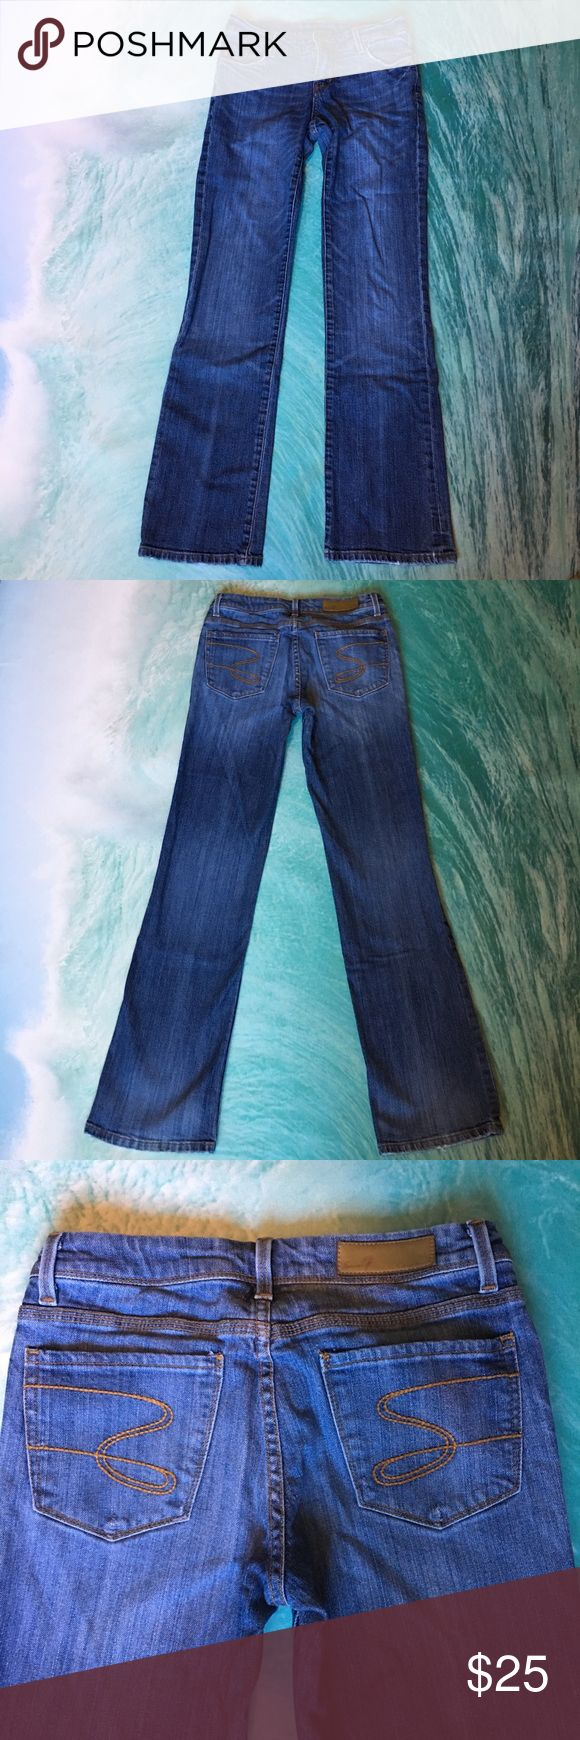 Seven 7 jeans boot cut  7 Seven jeans in great condition some wear on back pockets as shown above and some wear on the bottom  Seven7 Jeans Boot Cut